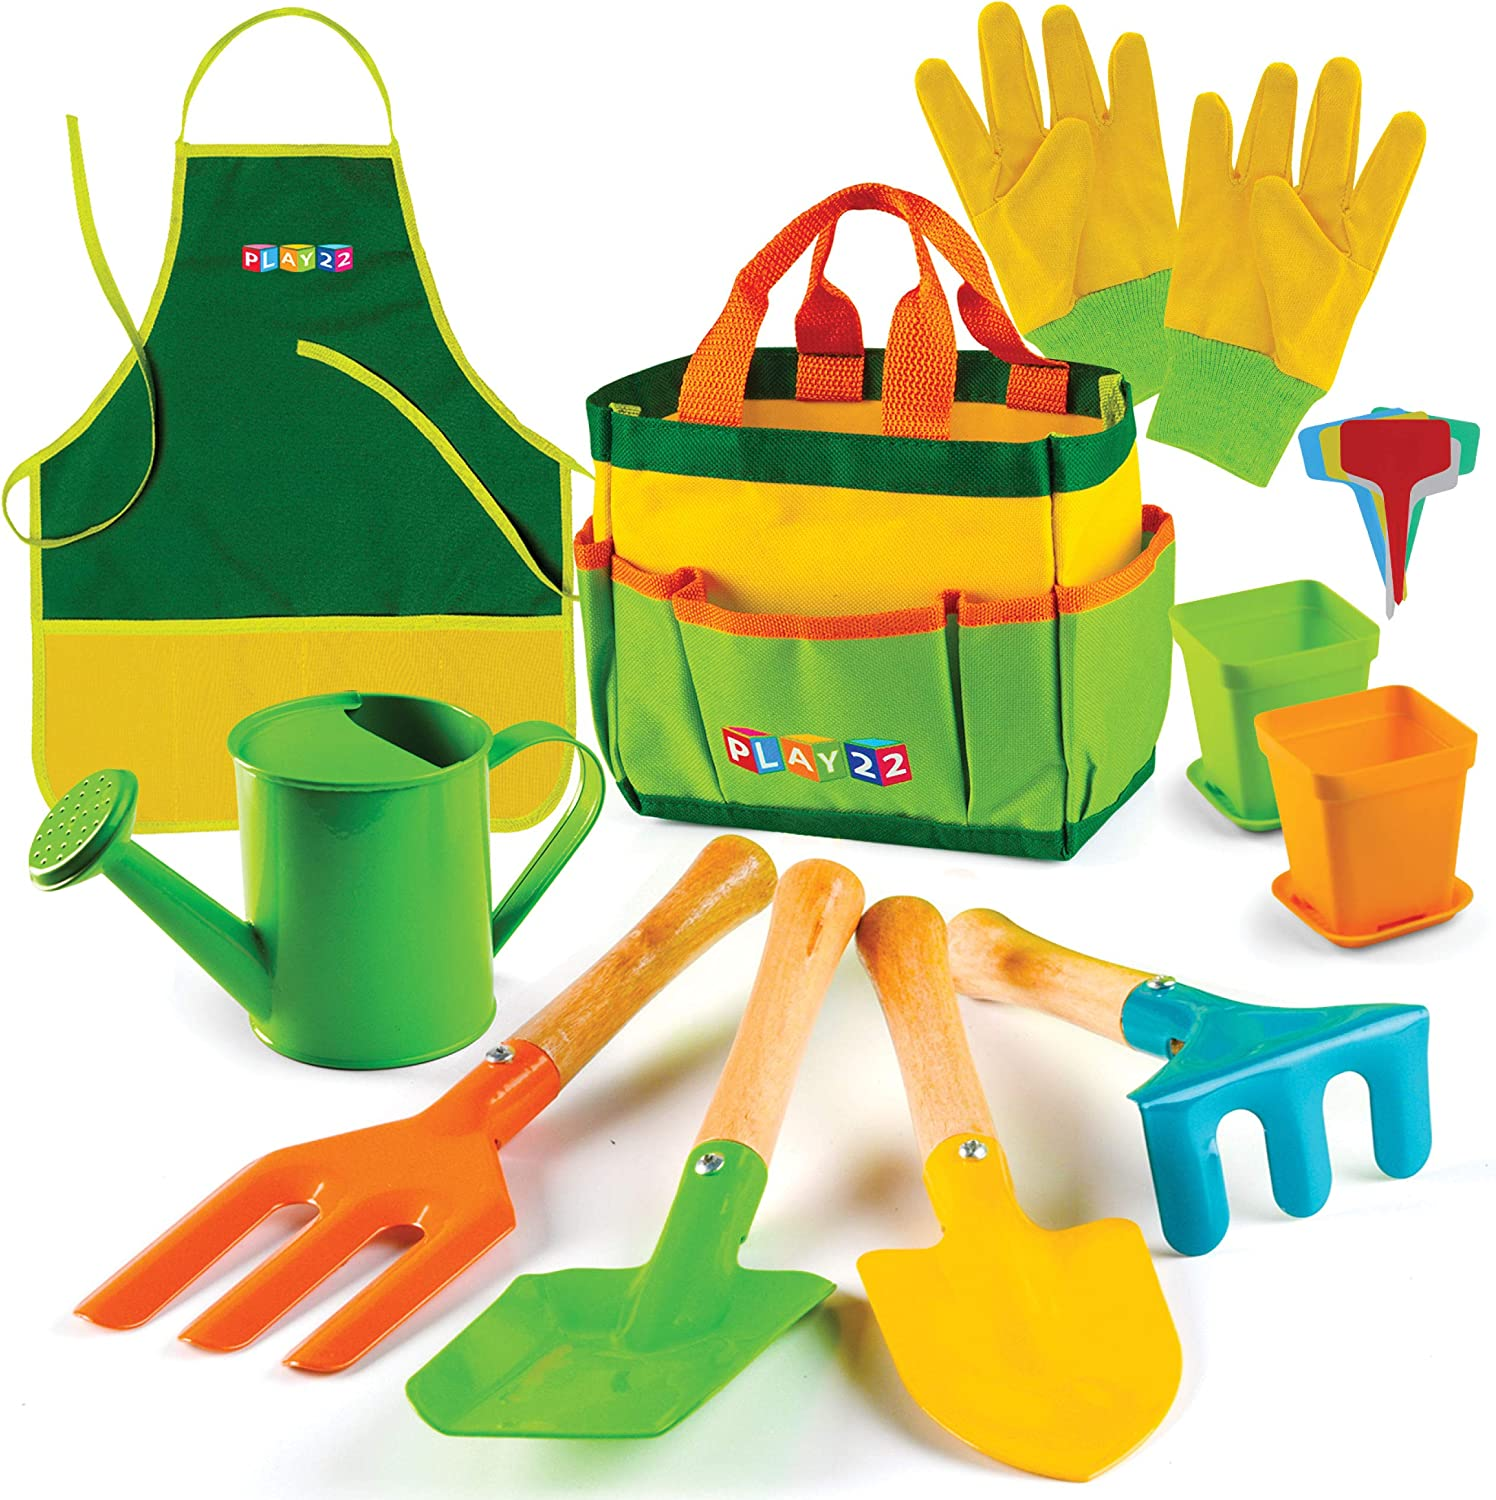 Play22 Kids Gardening Tool Set 12 PCS - Kids Gardening Tools Shovel, Rake Fork Trowel Apron Gloves Watering Can and Tote Bag - Wooden Gardening Tools for Kids Best Outdoor Toys Gift for Boys and Girls